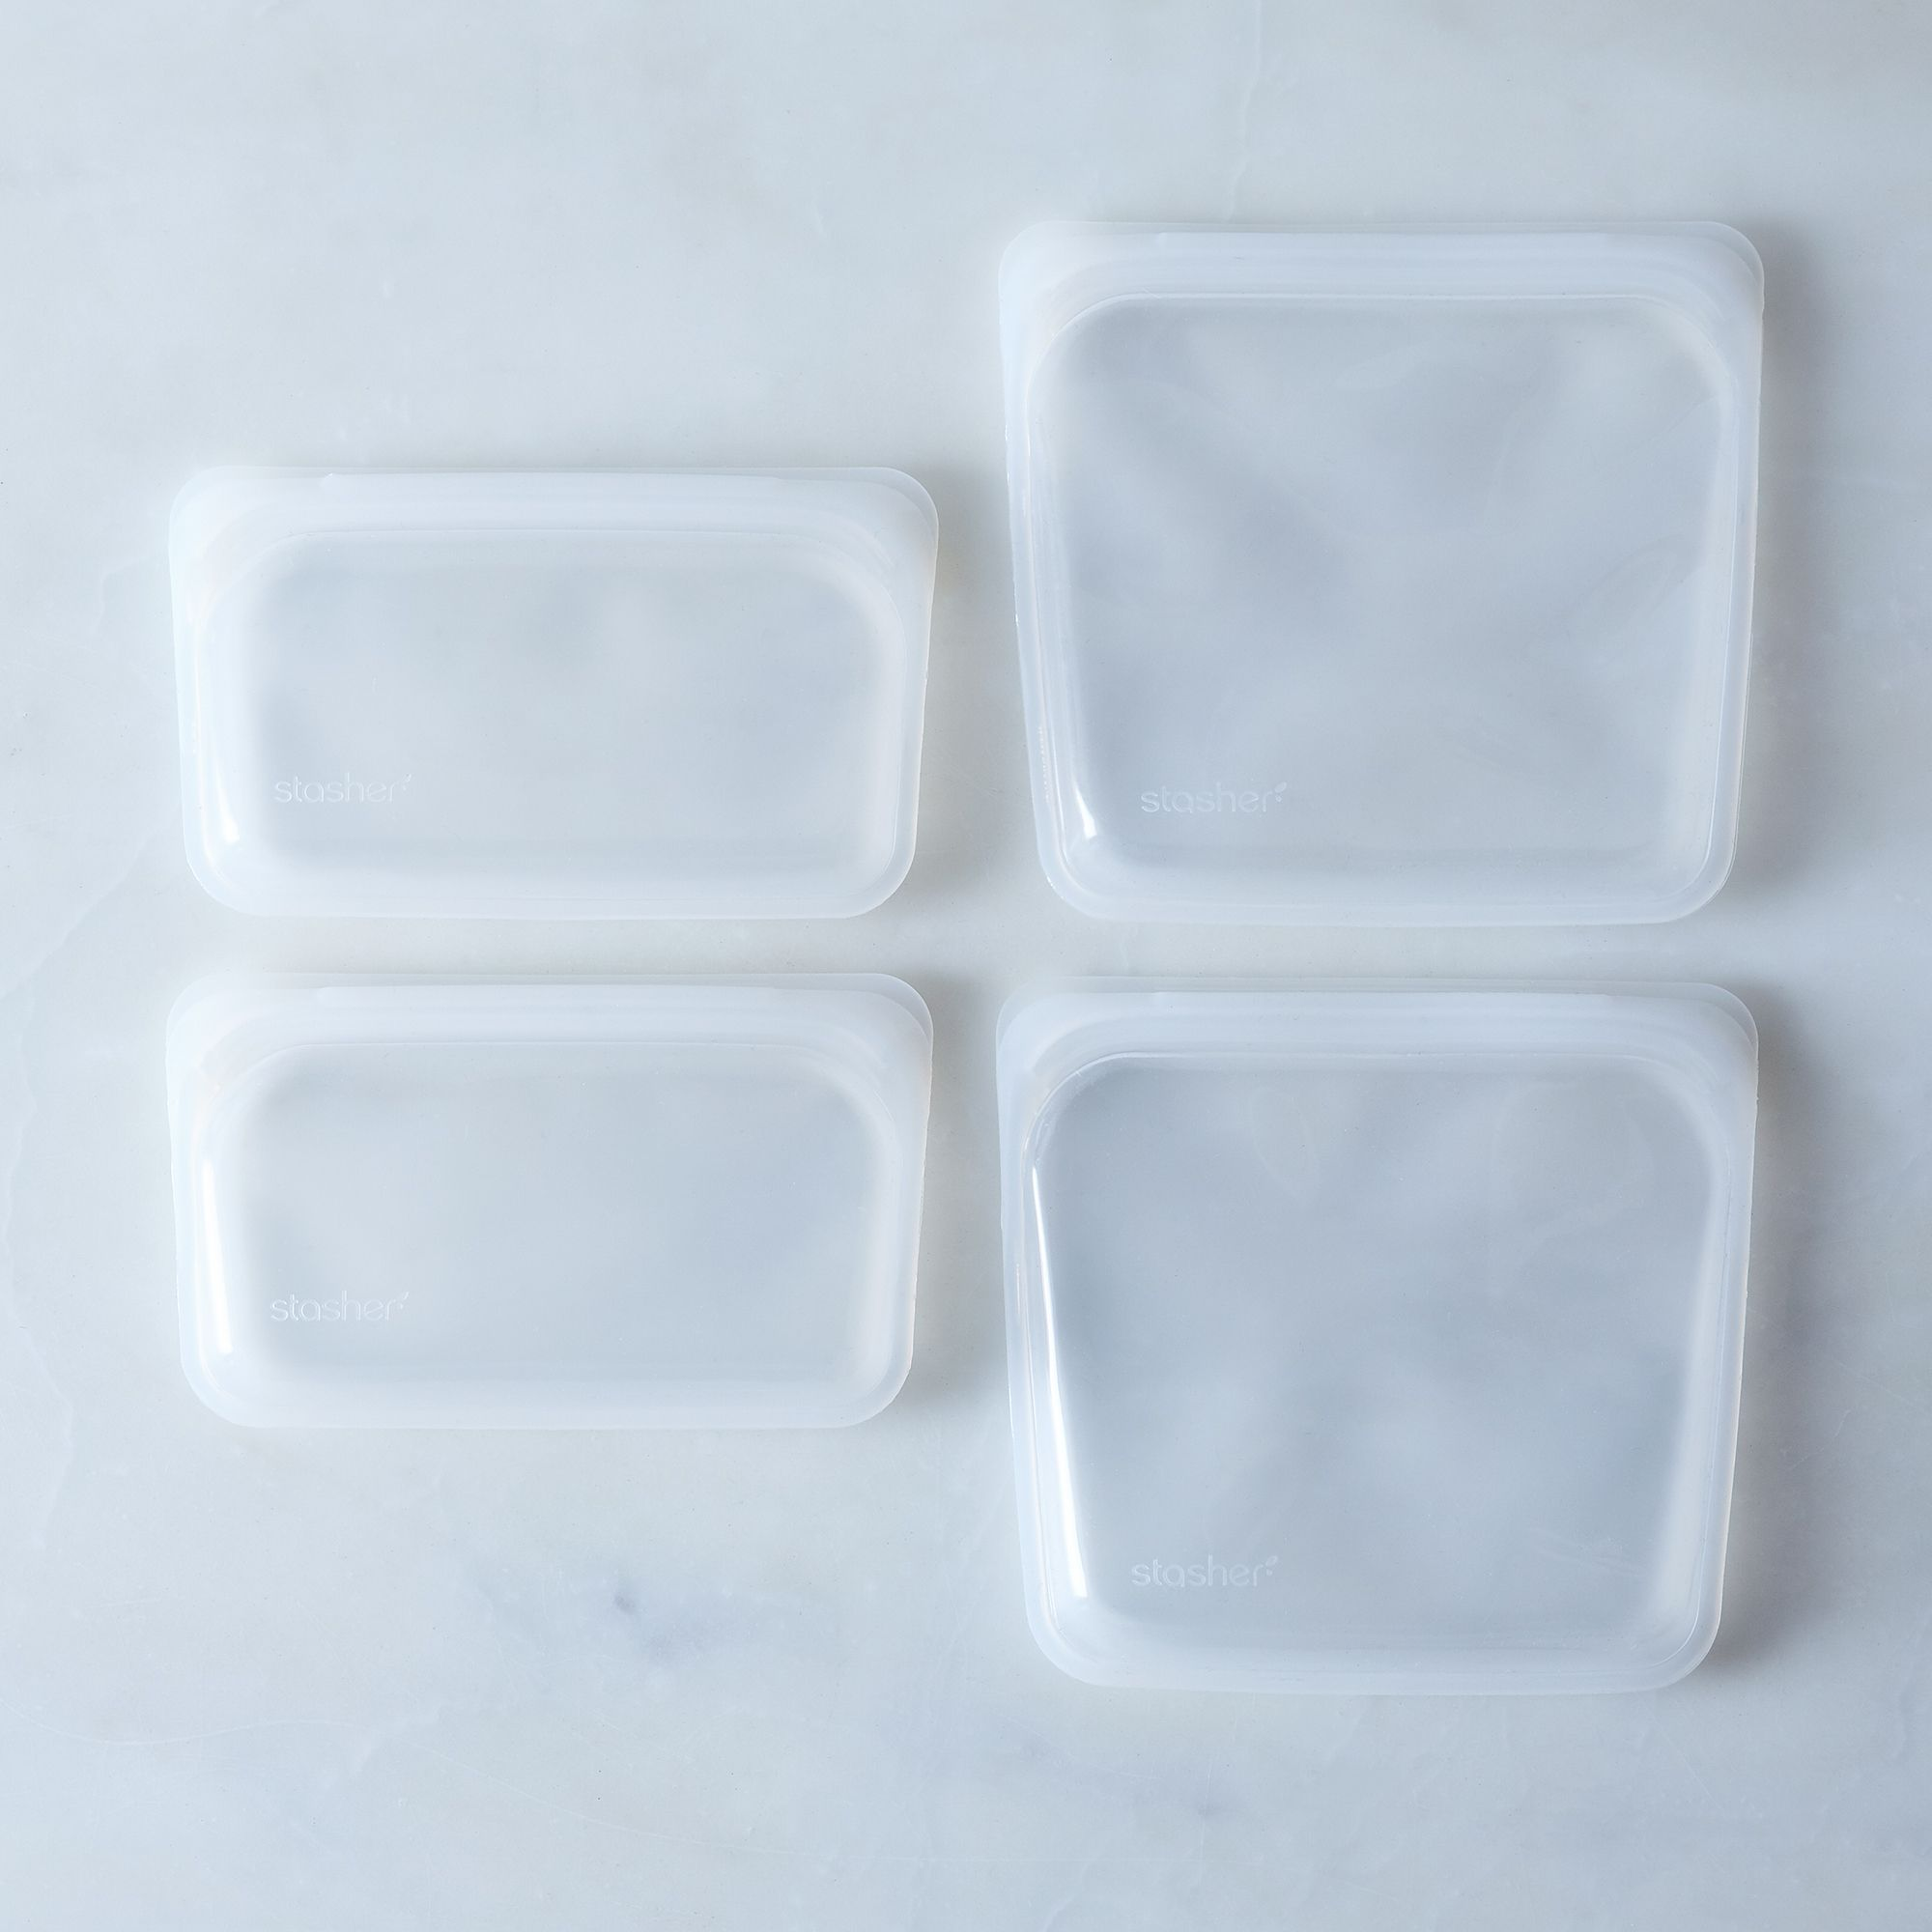 939a73c4 107a 446b 89a8 11684ffa8945  2017 0404 stasher reusable snack bags clear combo set of 4 detail silo rocky luten 0390